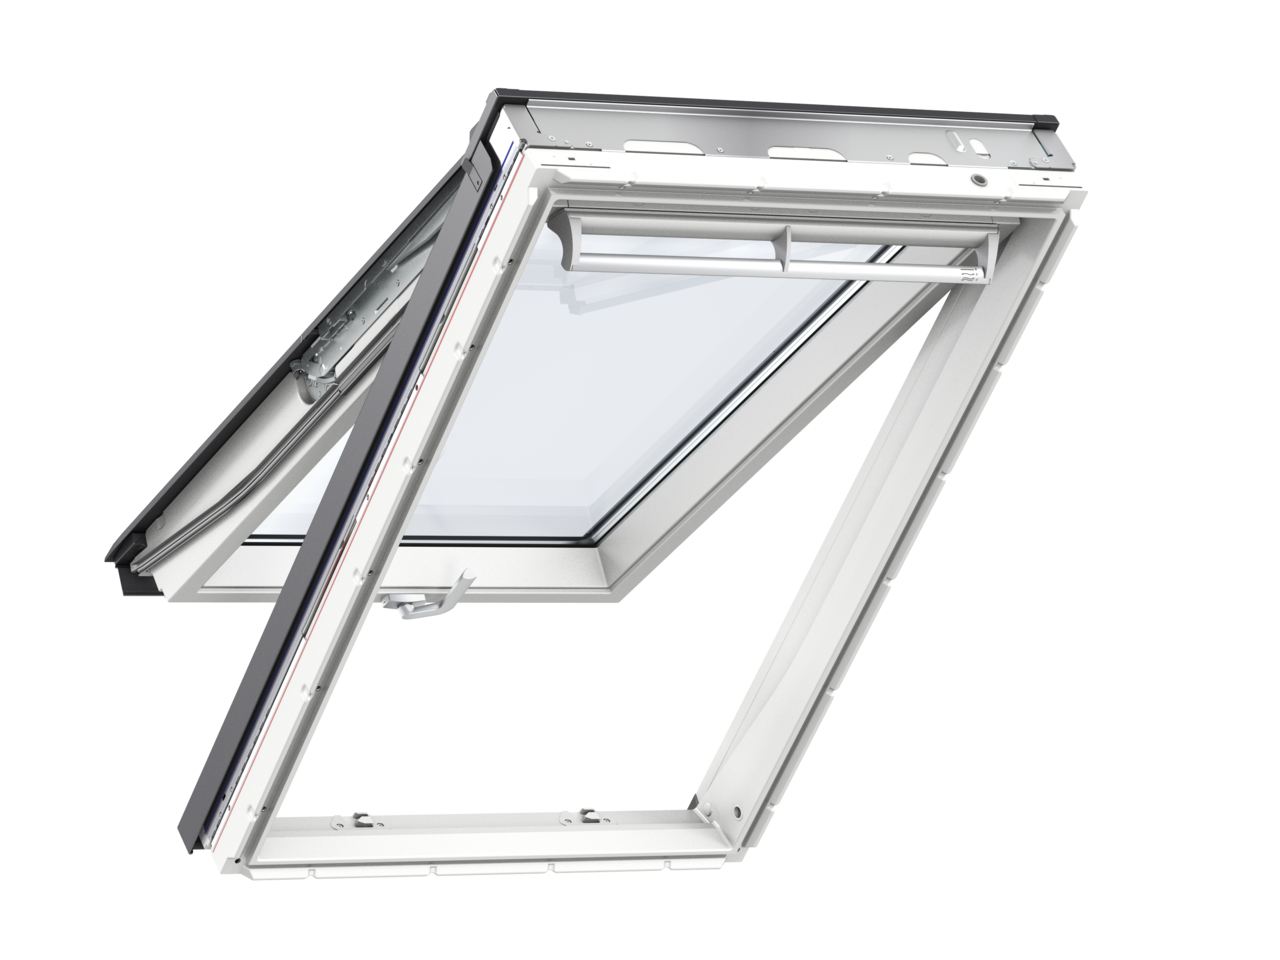 Velux GPU CK04 550 x 980mm Top Hung 62Pane Roof Window - White Polyurethane